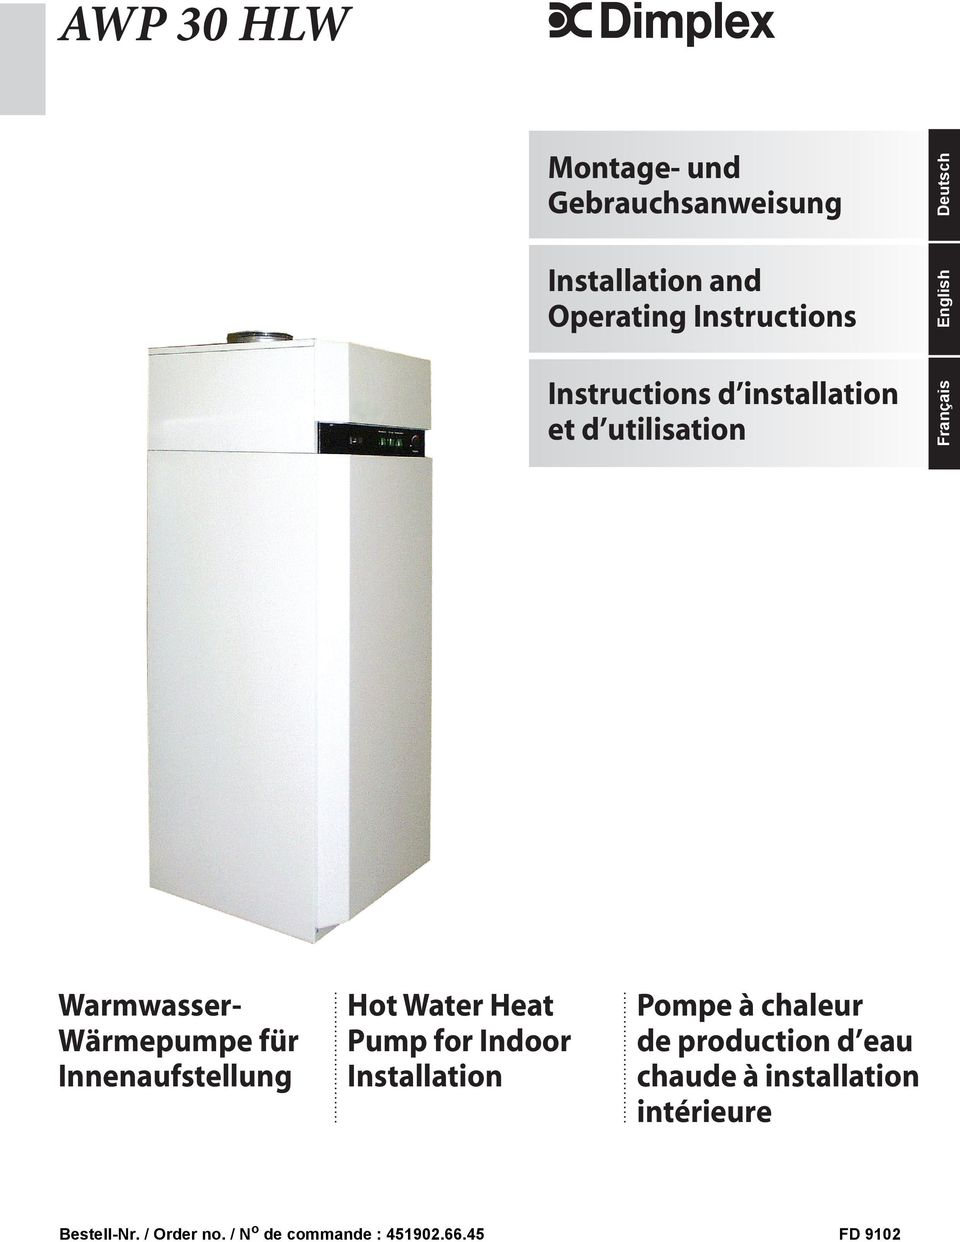 Water Heat Pump for Indoor Installation Bestell-Nr. / Order no. / No de commande : 451902.66.